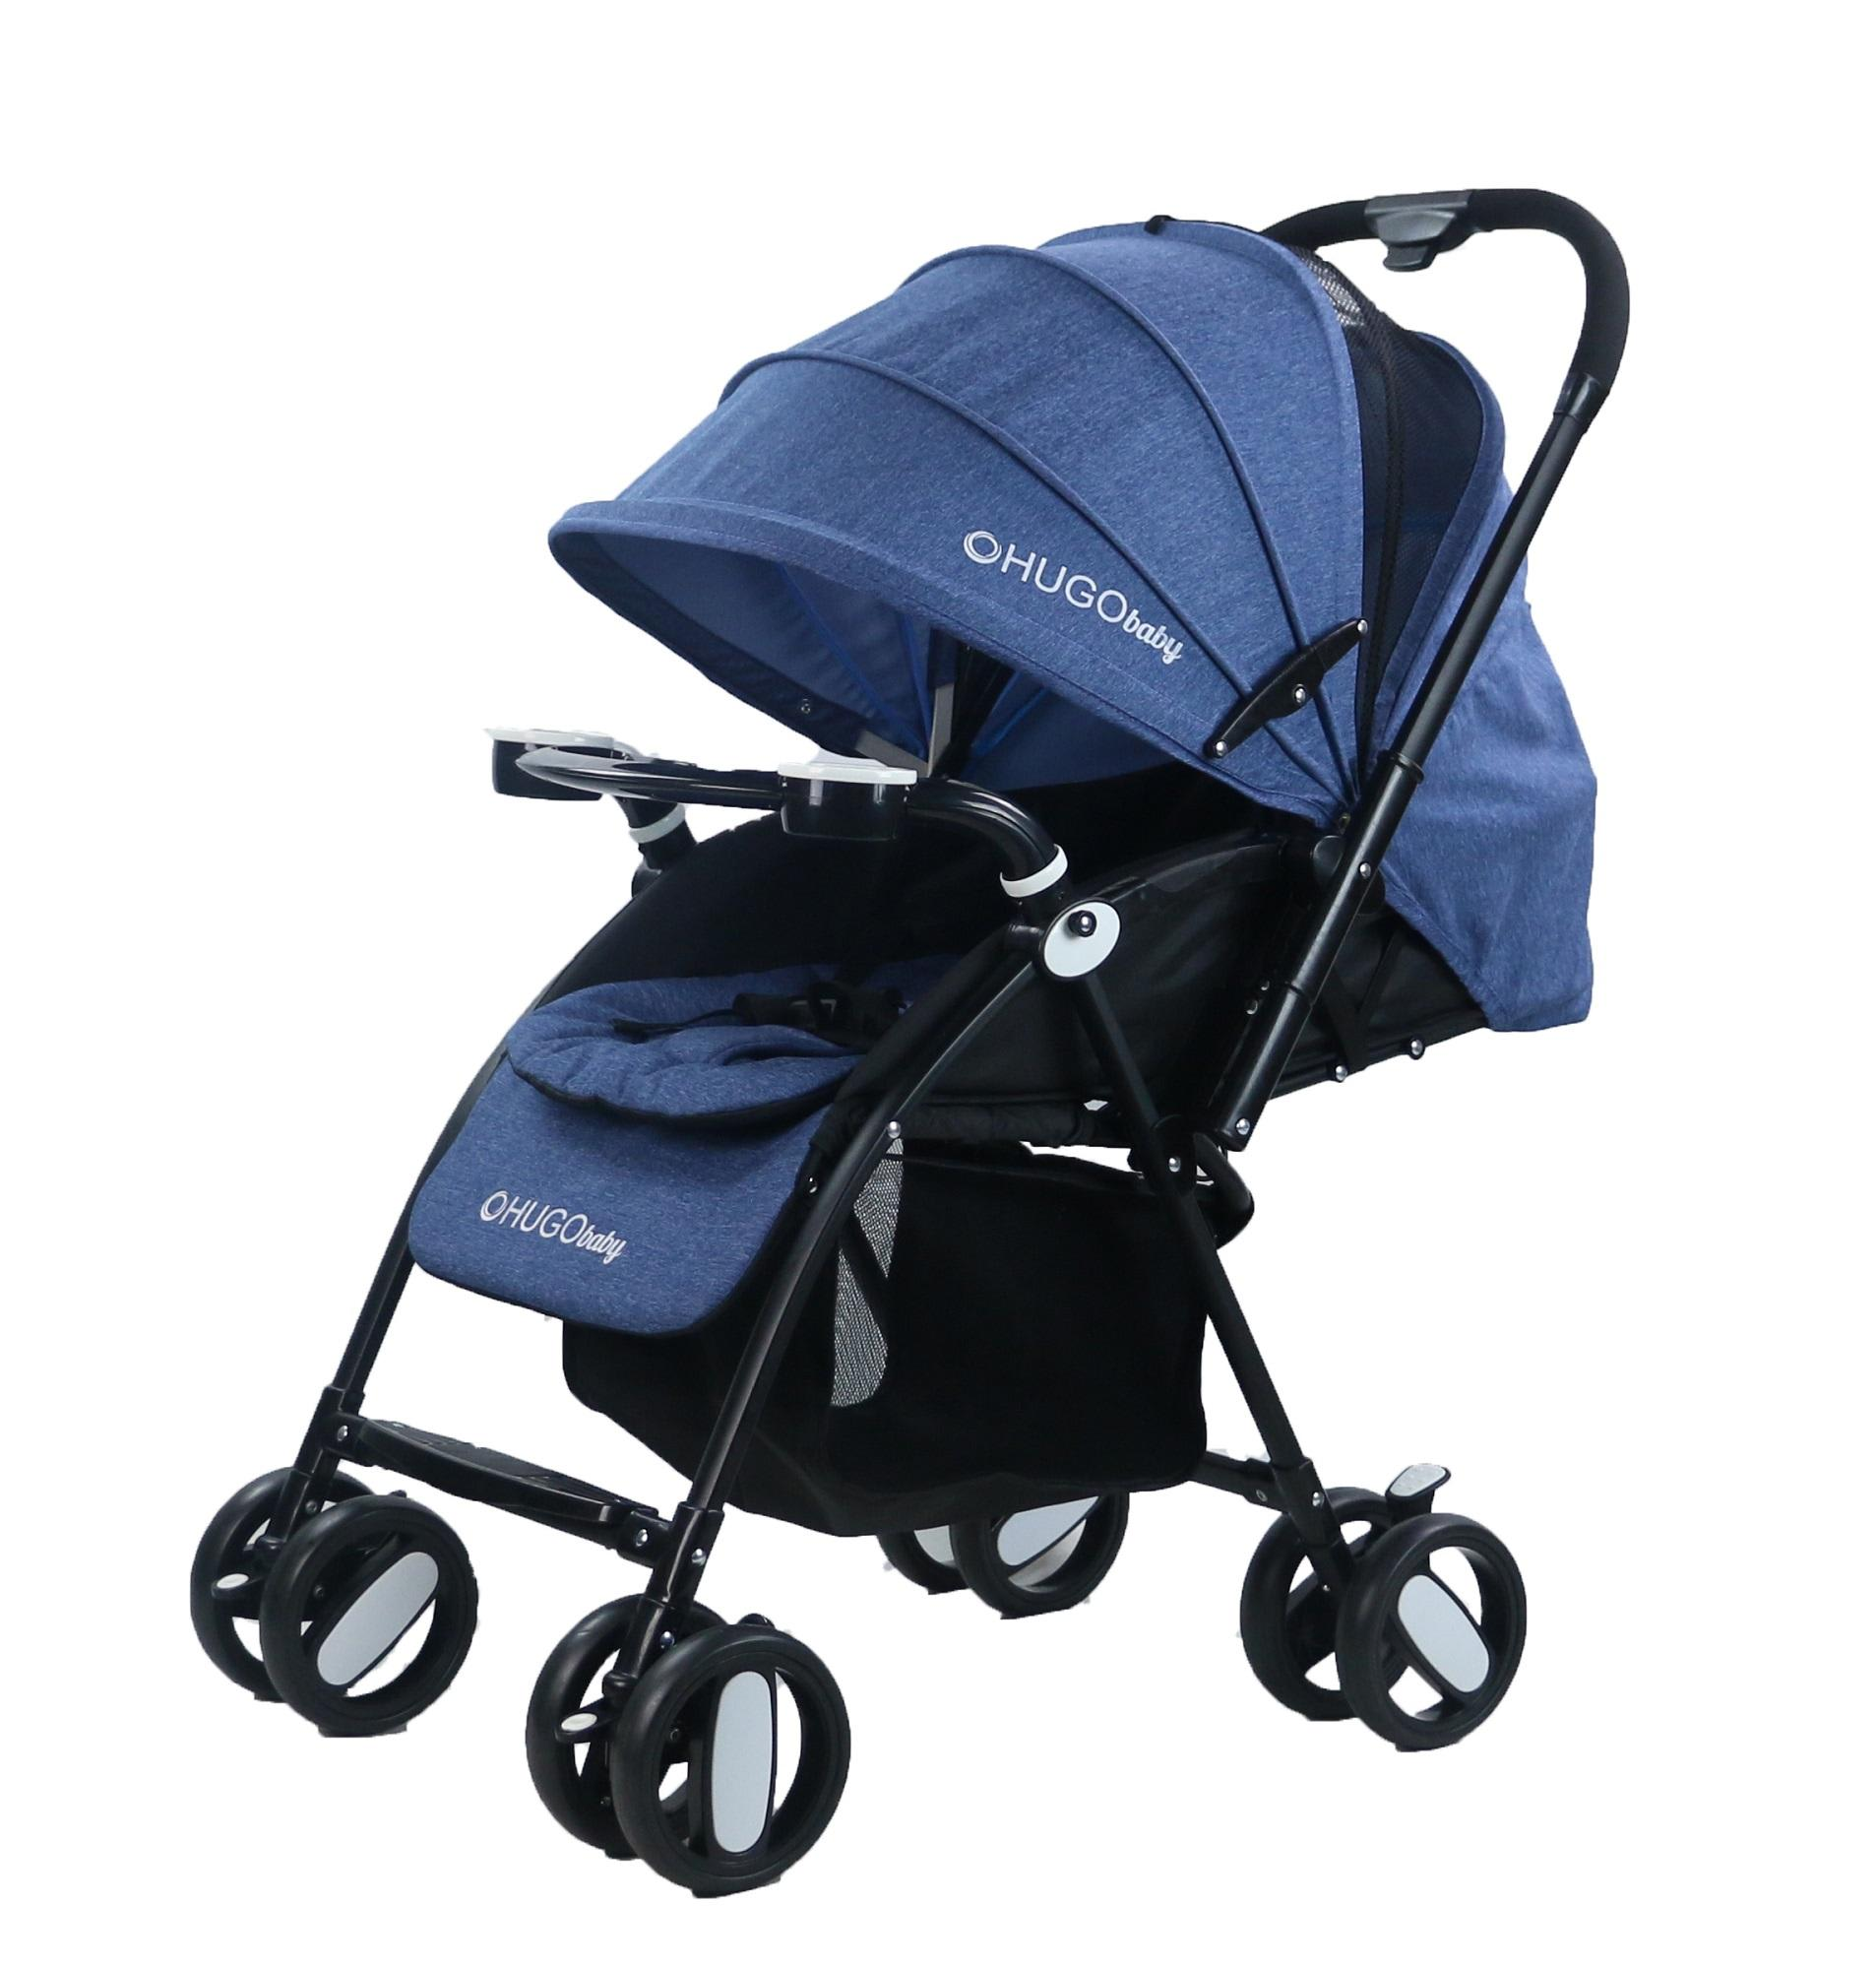 8 Best Strollers For Newborns in Malaysia 2020 - Top ...